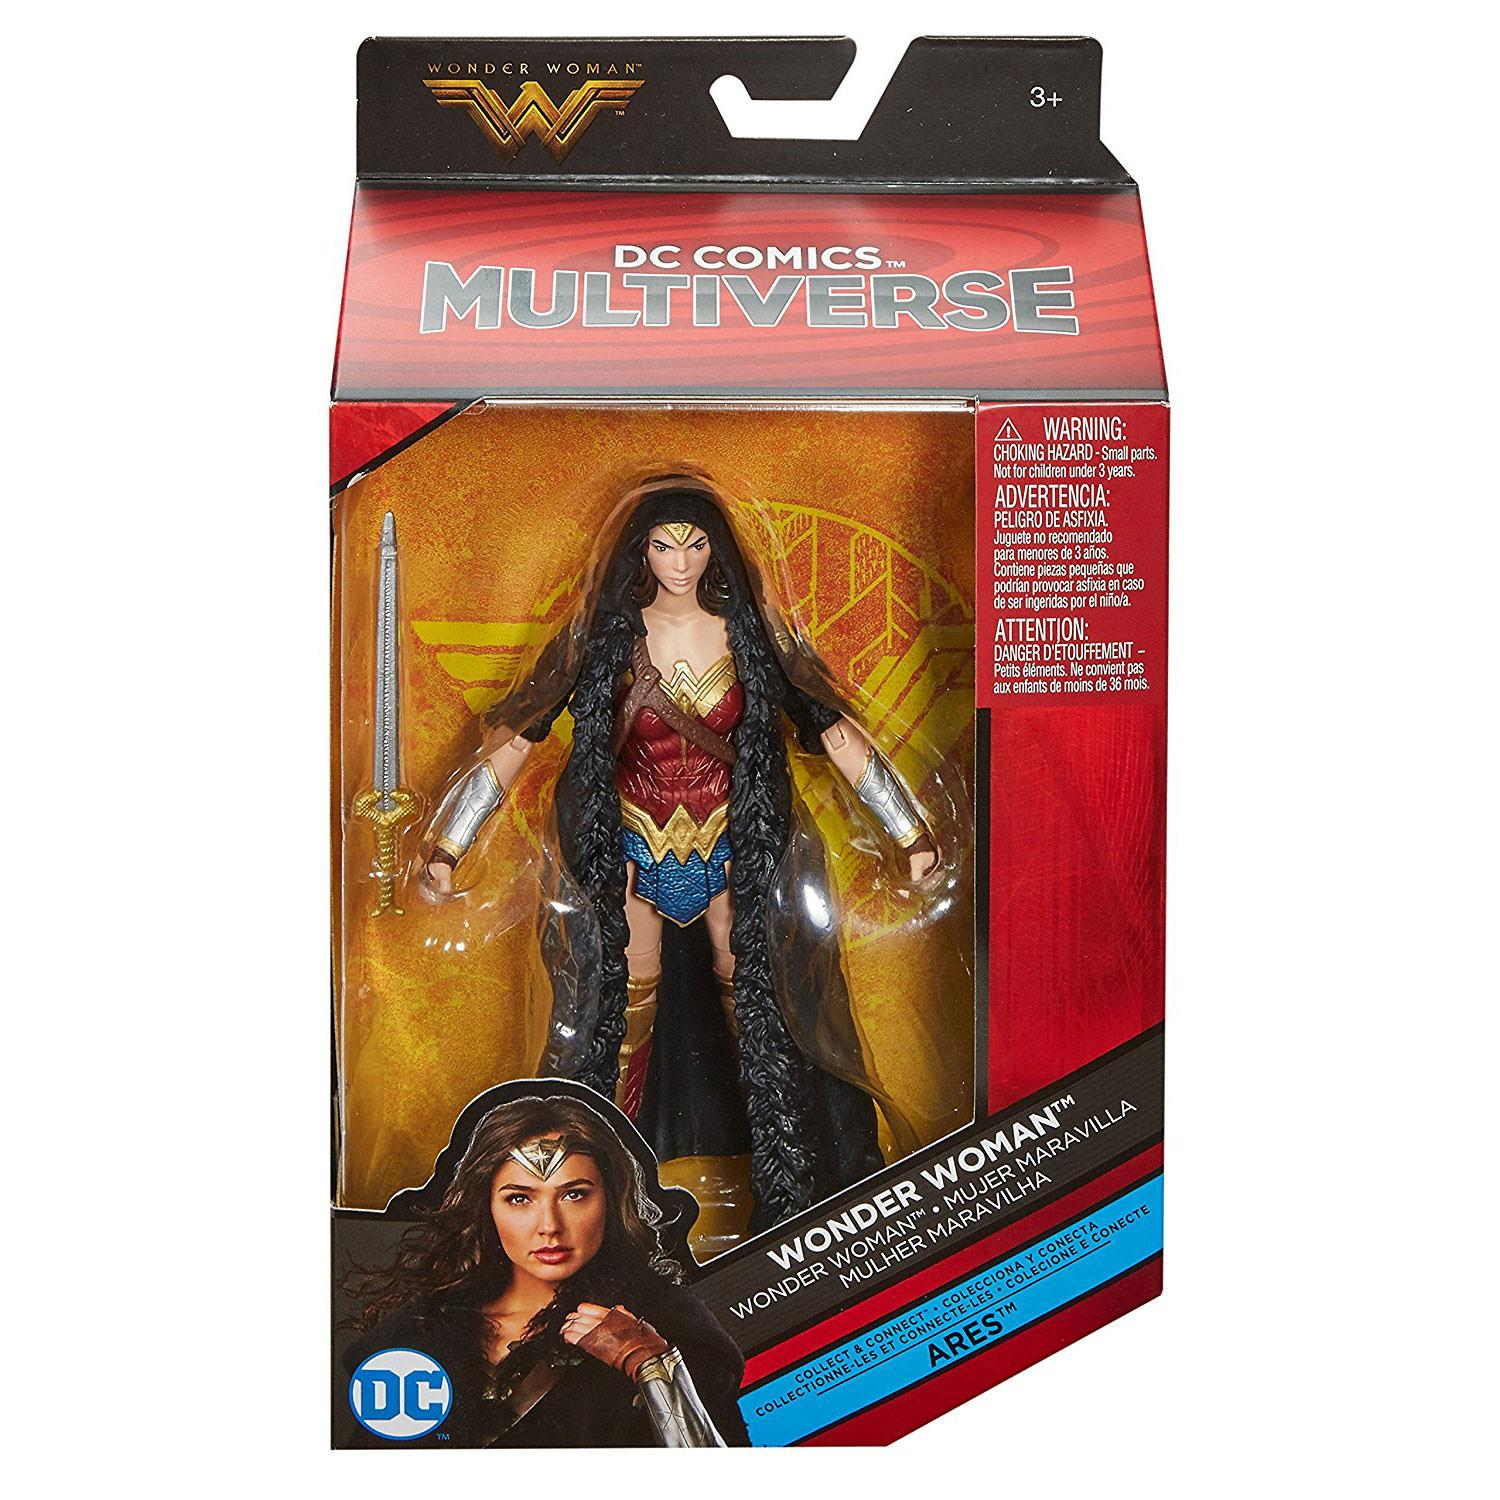 DC Comics Multiverse Wonder Woman Wonder Woman2